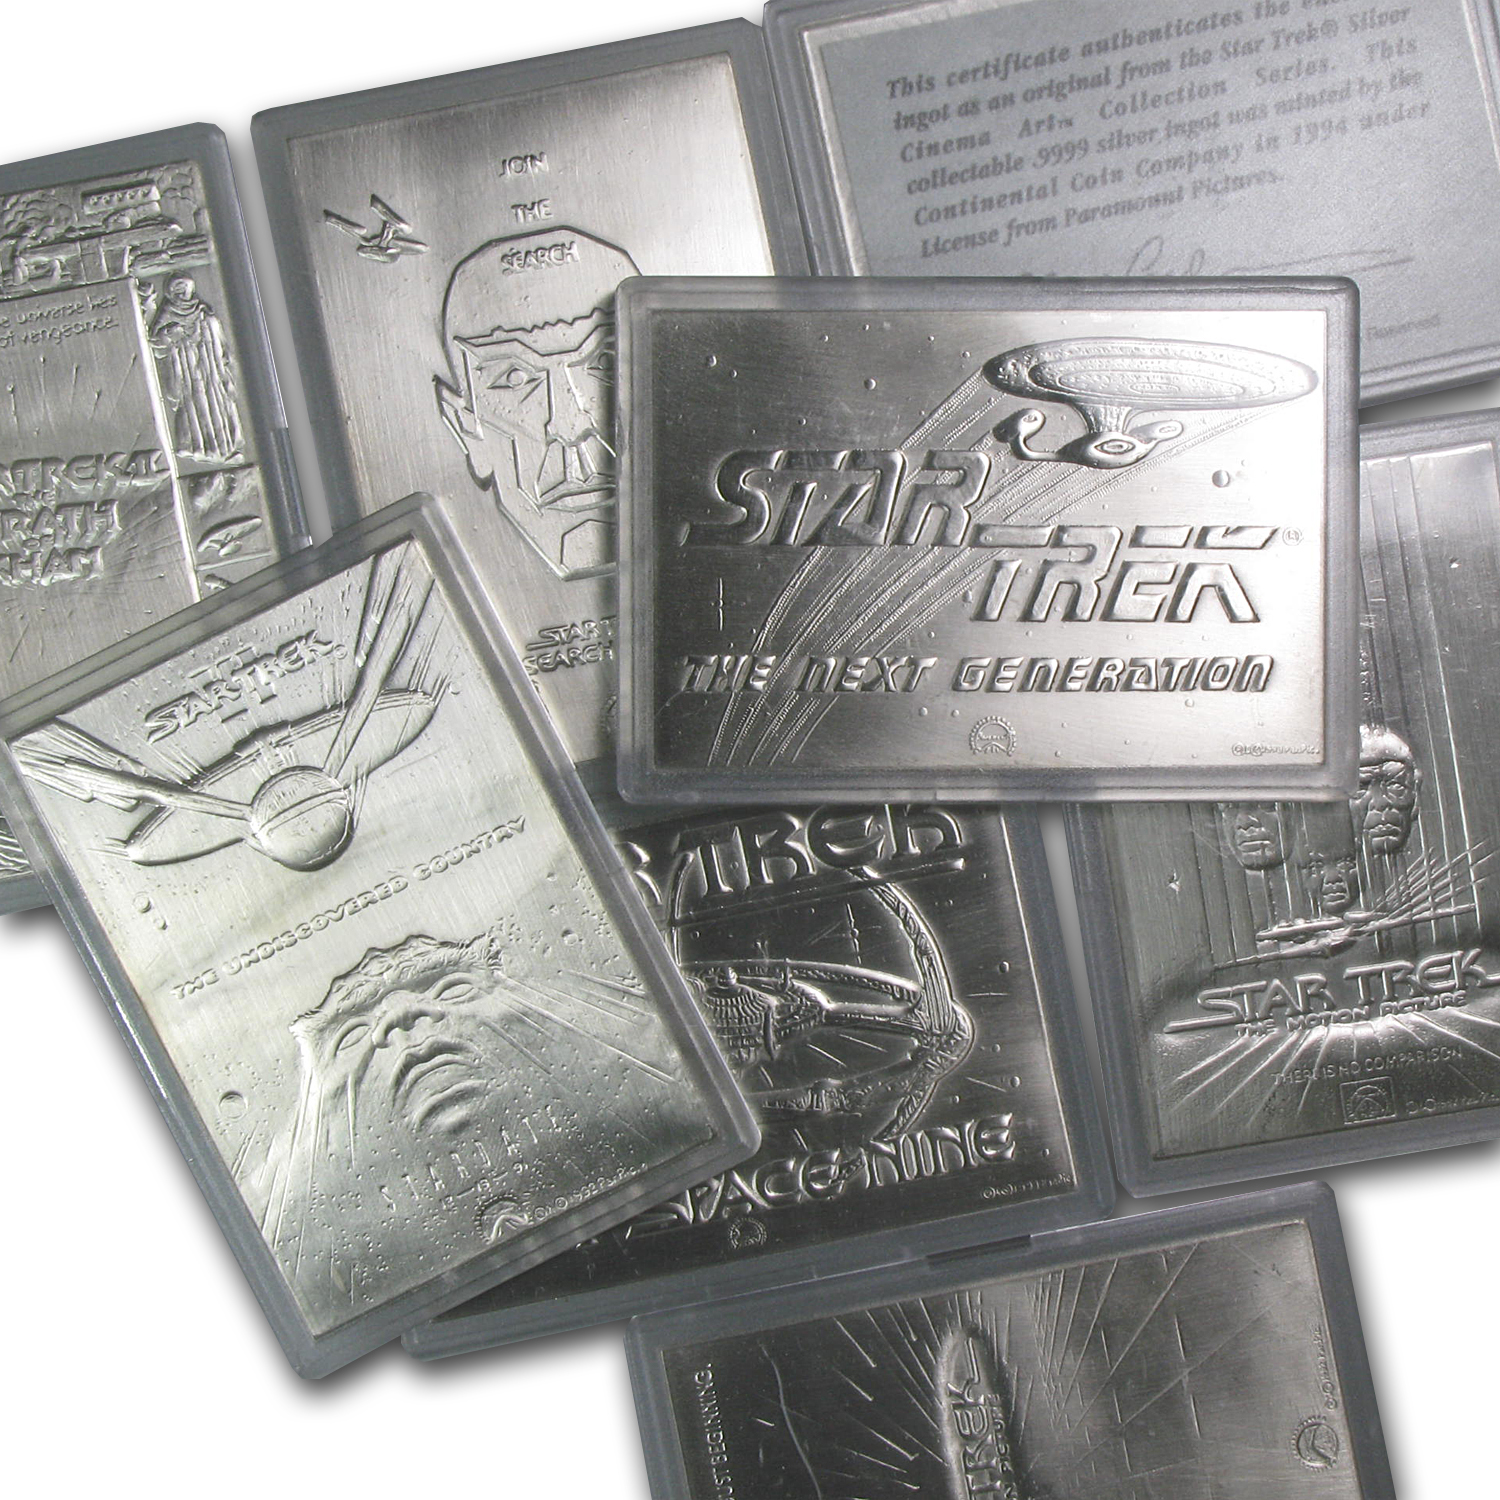 1 oz Silver Bar - Star Trek (Various)